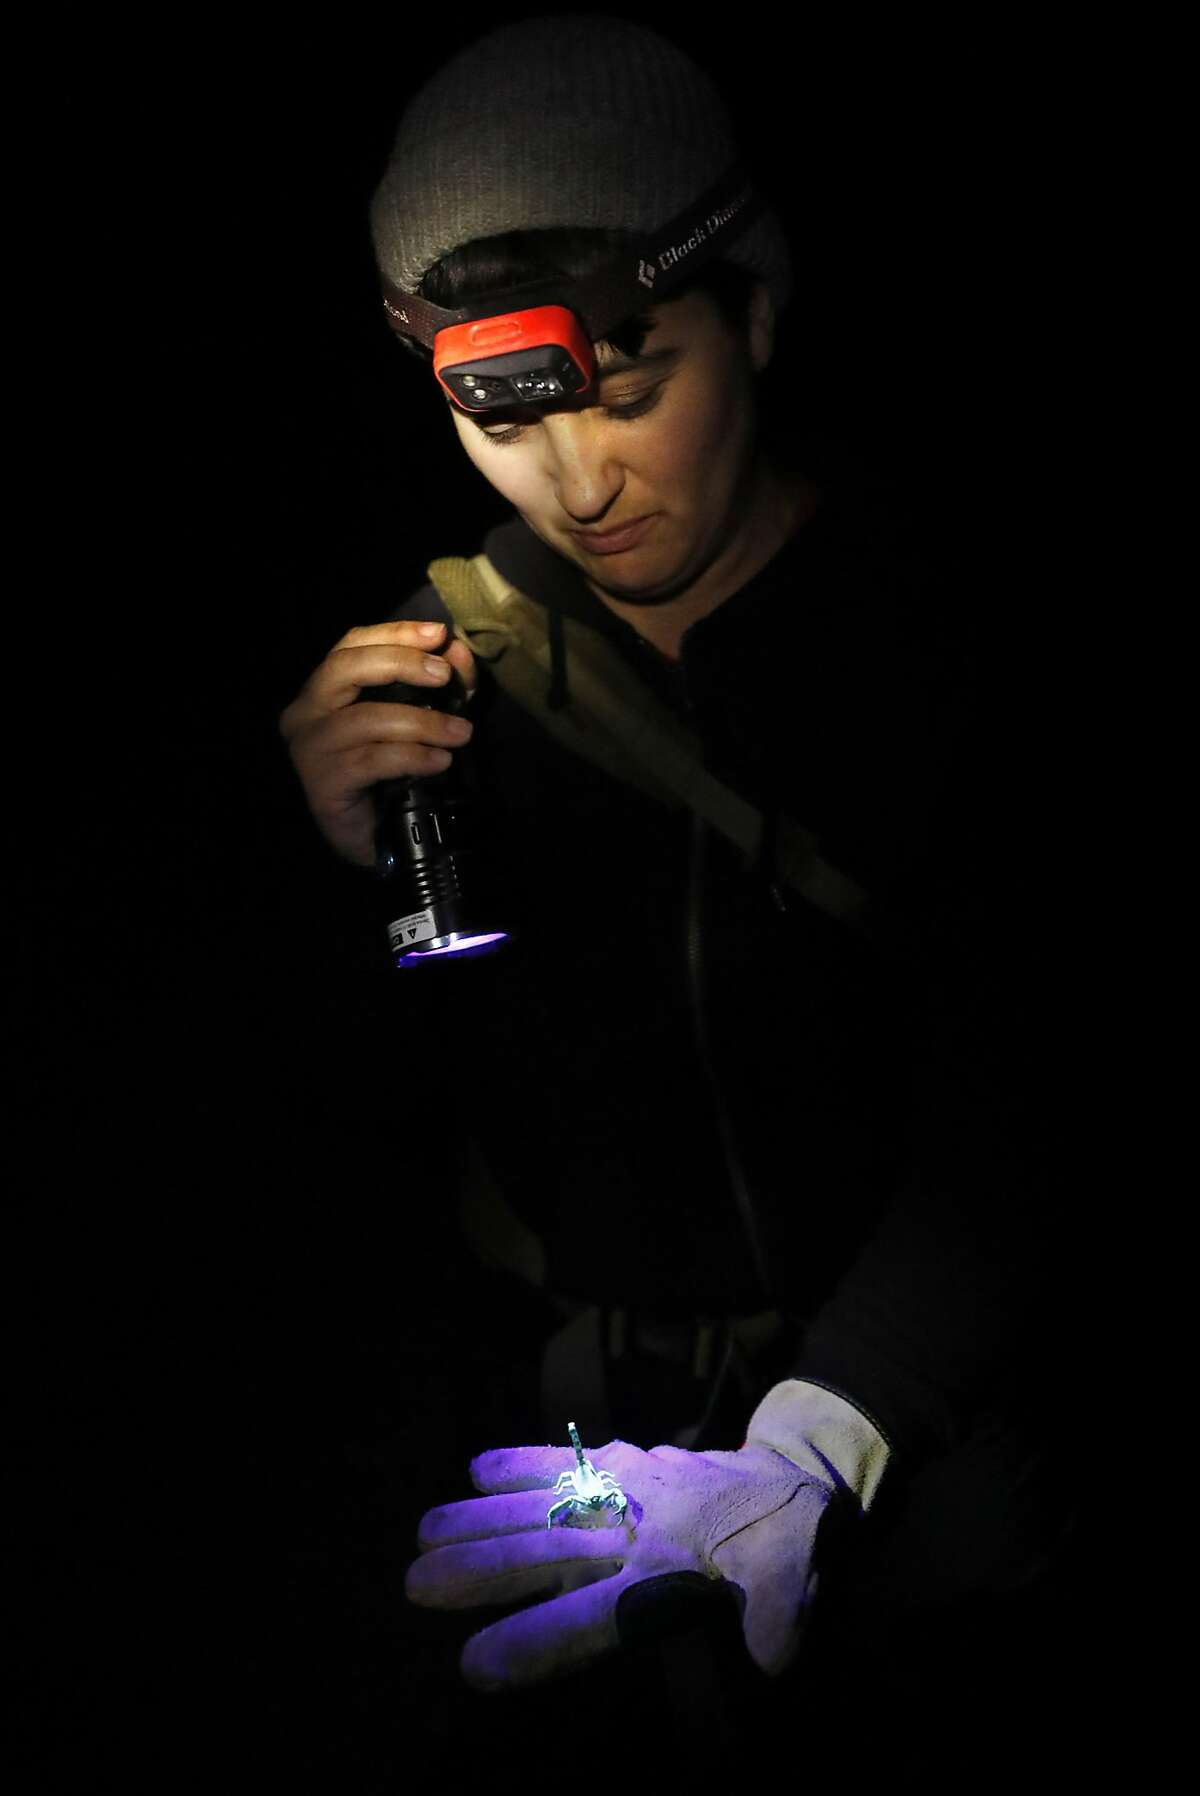 California Academy of Sciences' arachnologist Lauren Esposito holds a pacific forest scorpion glowing under UV light on Mt. Tamalpais in Mill Valley, Calif.. on Monday, November 5, 2018.